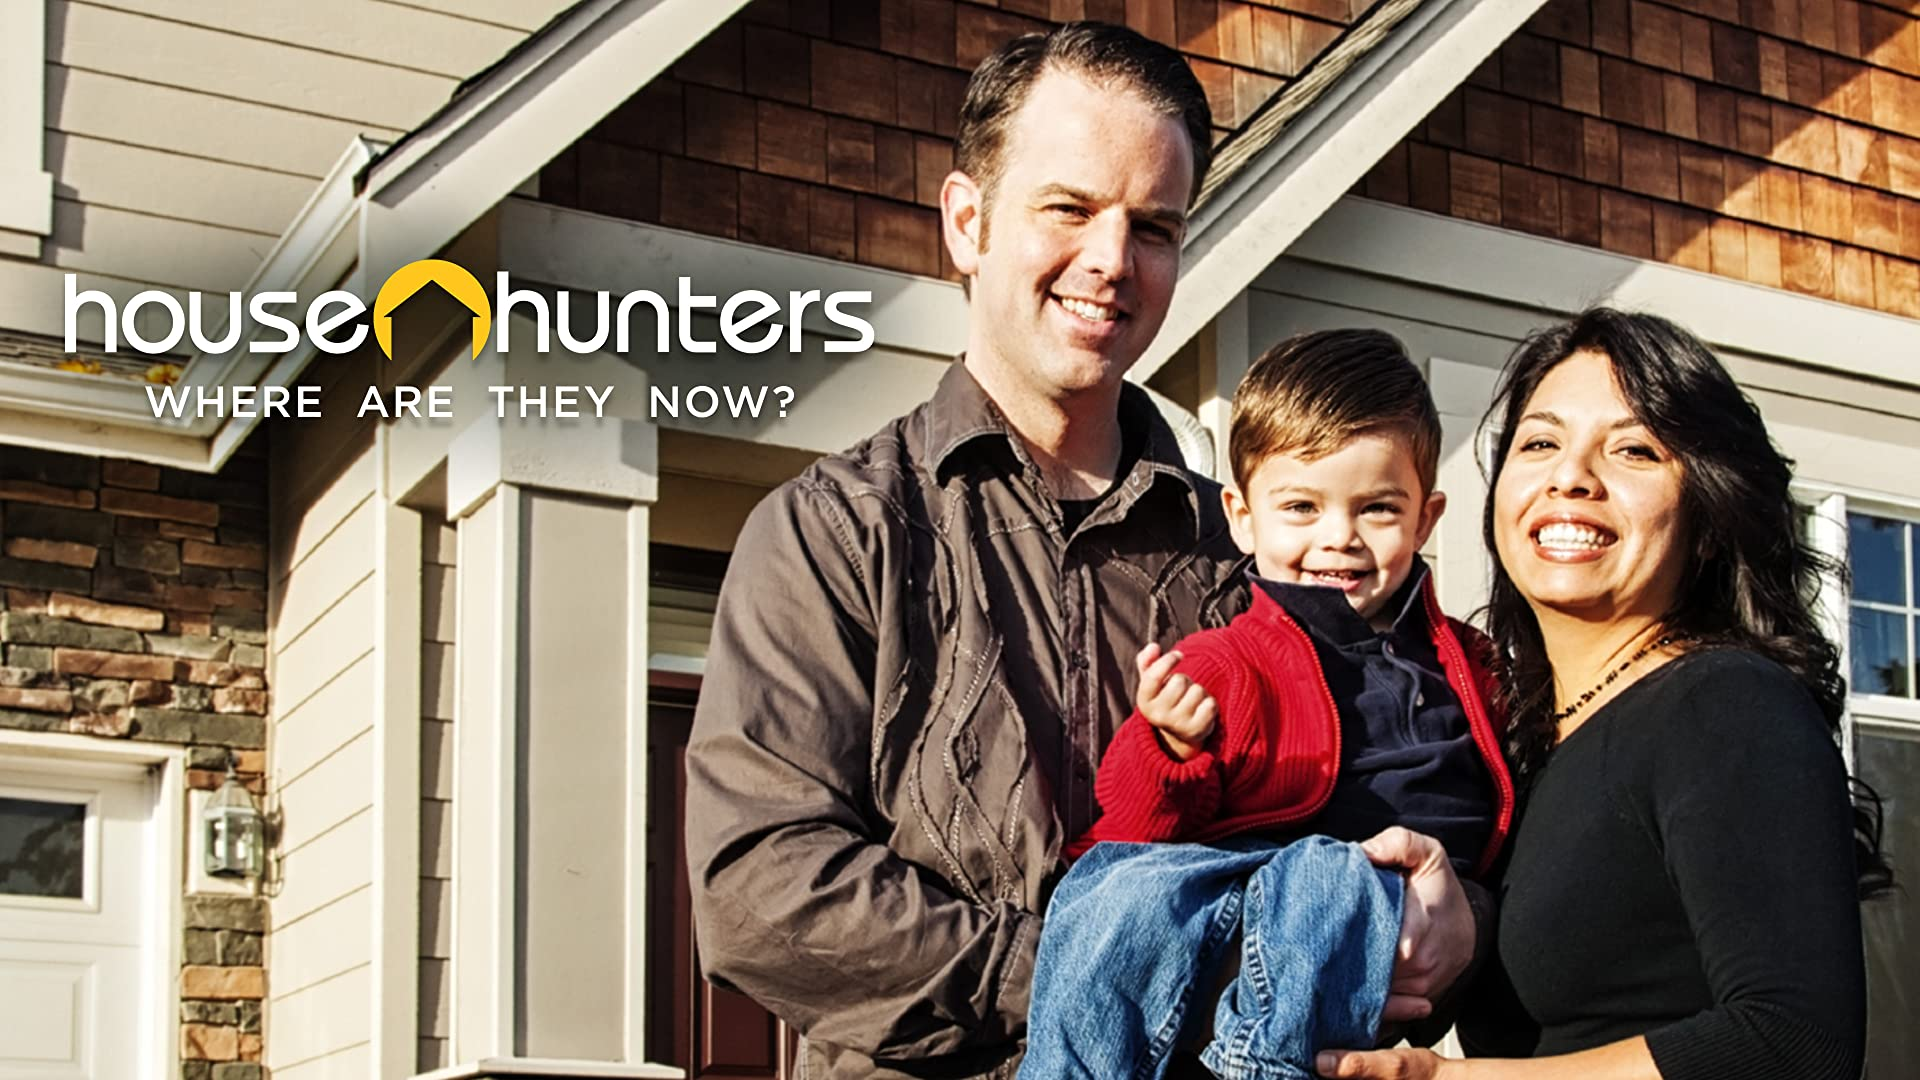 House Hunters: Where Are They Now? - Season 1